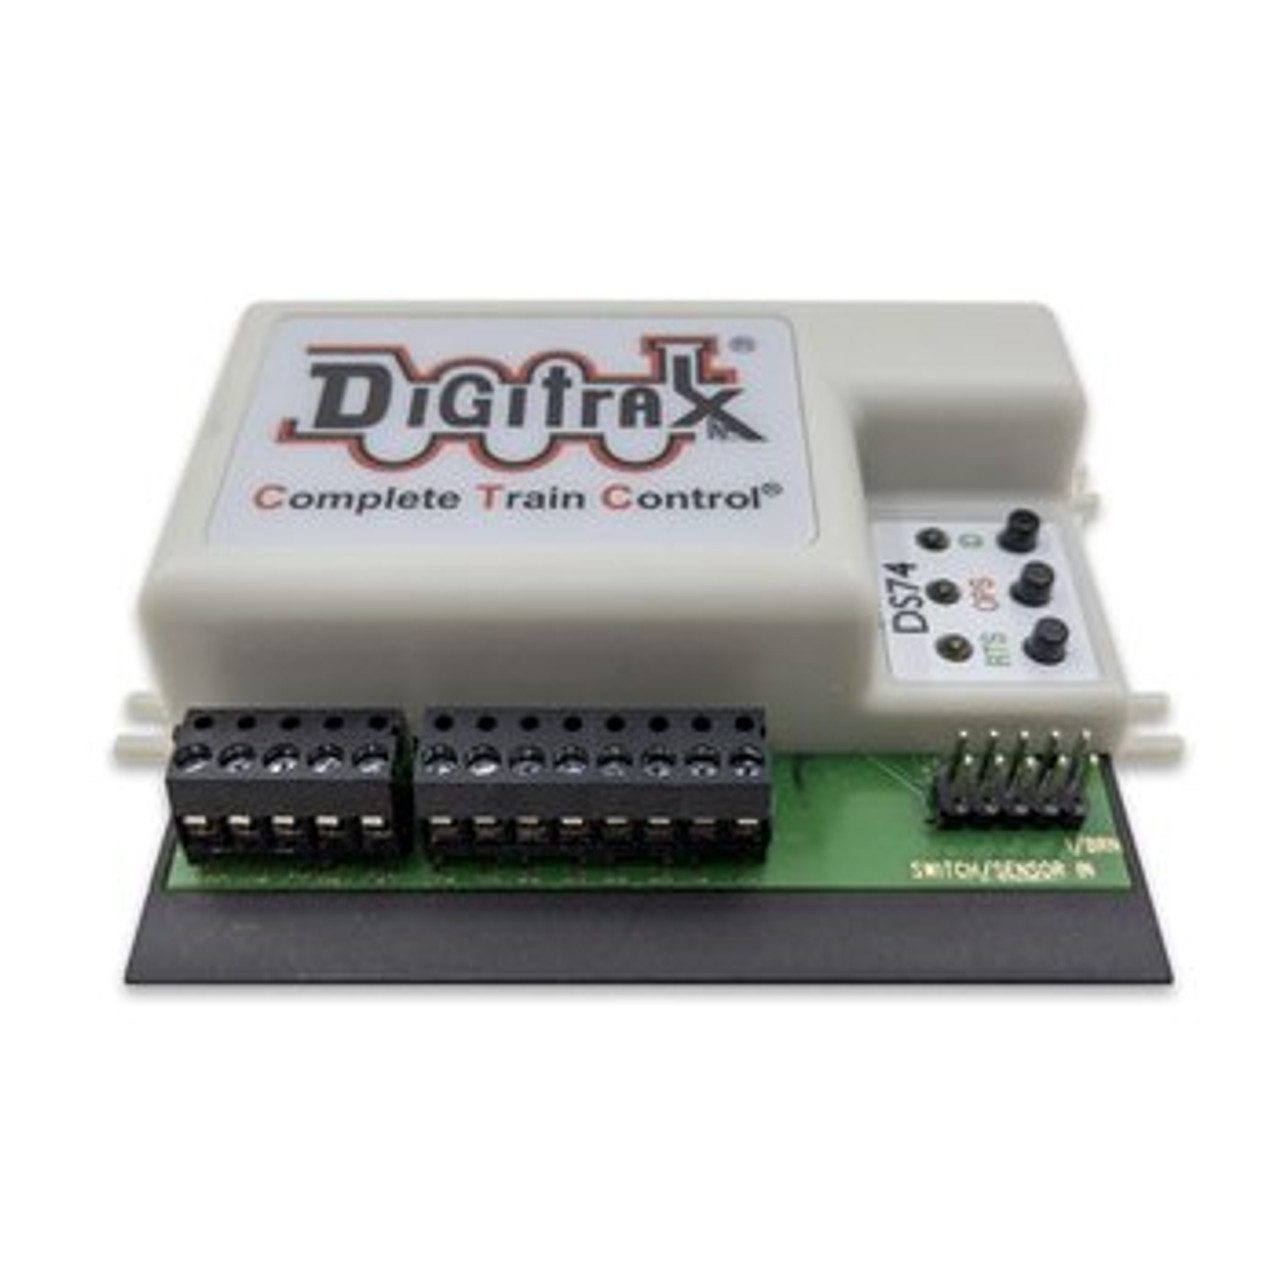 Digitrax DS74 Quad Switch Stationary Decoder Replaces DS64 All Scales